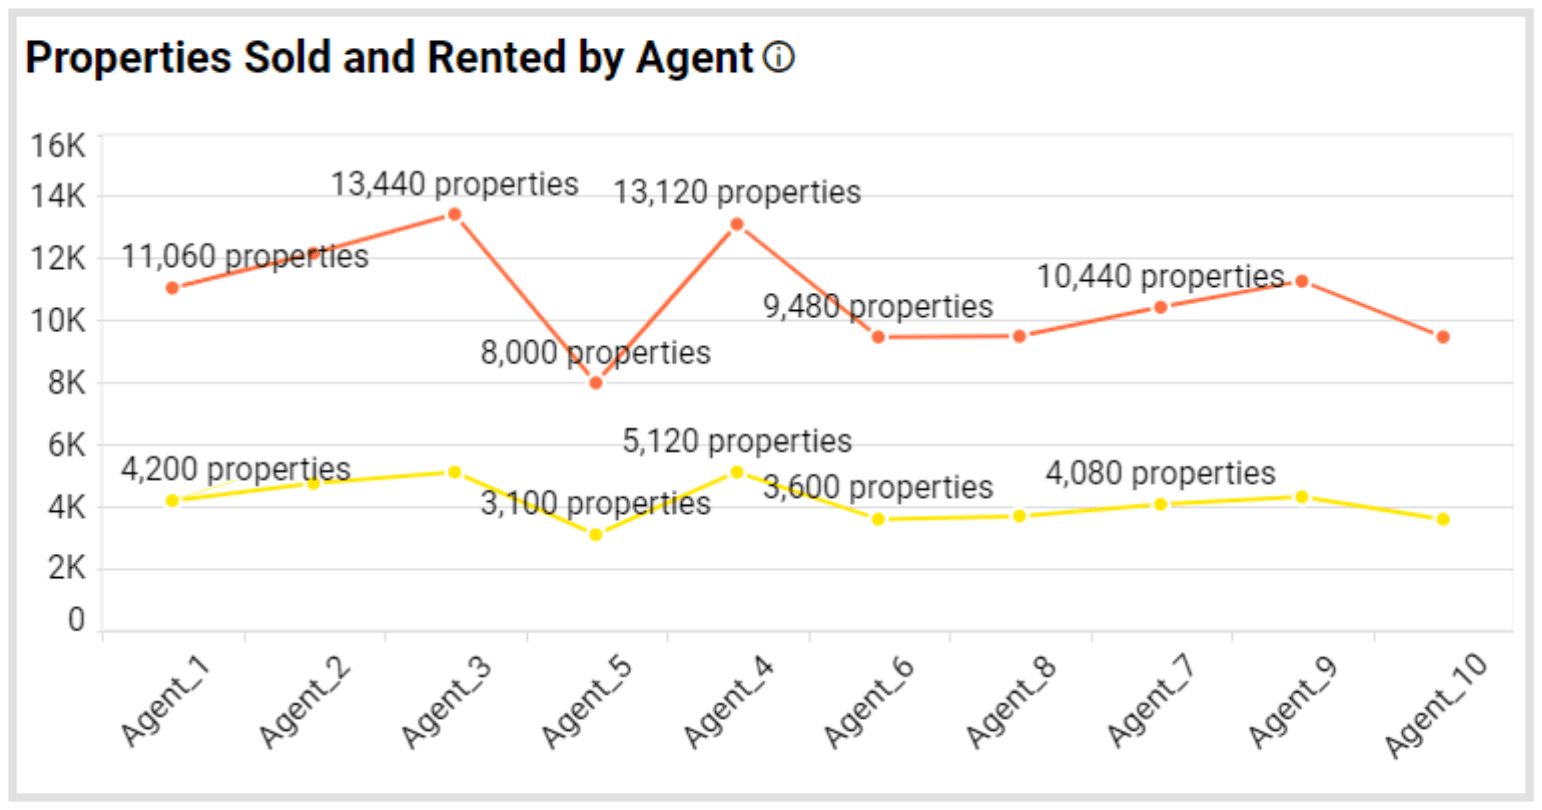 Properties Sold and Rented by Agent Metric in Bold BI's Real Estate Management Dashboard